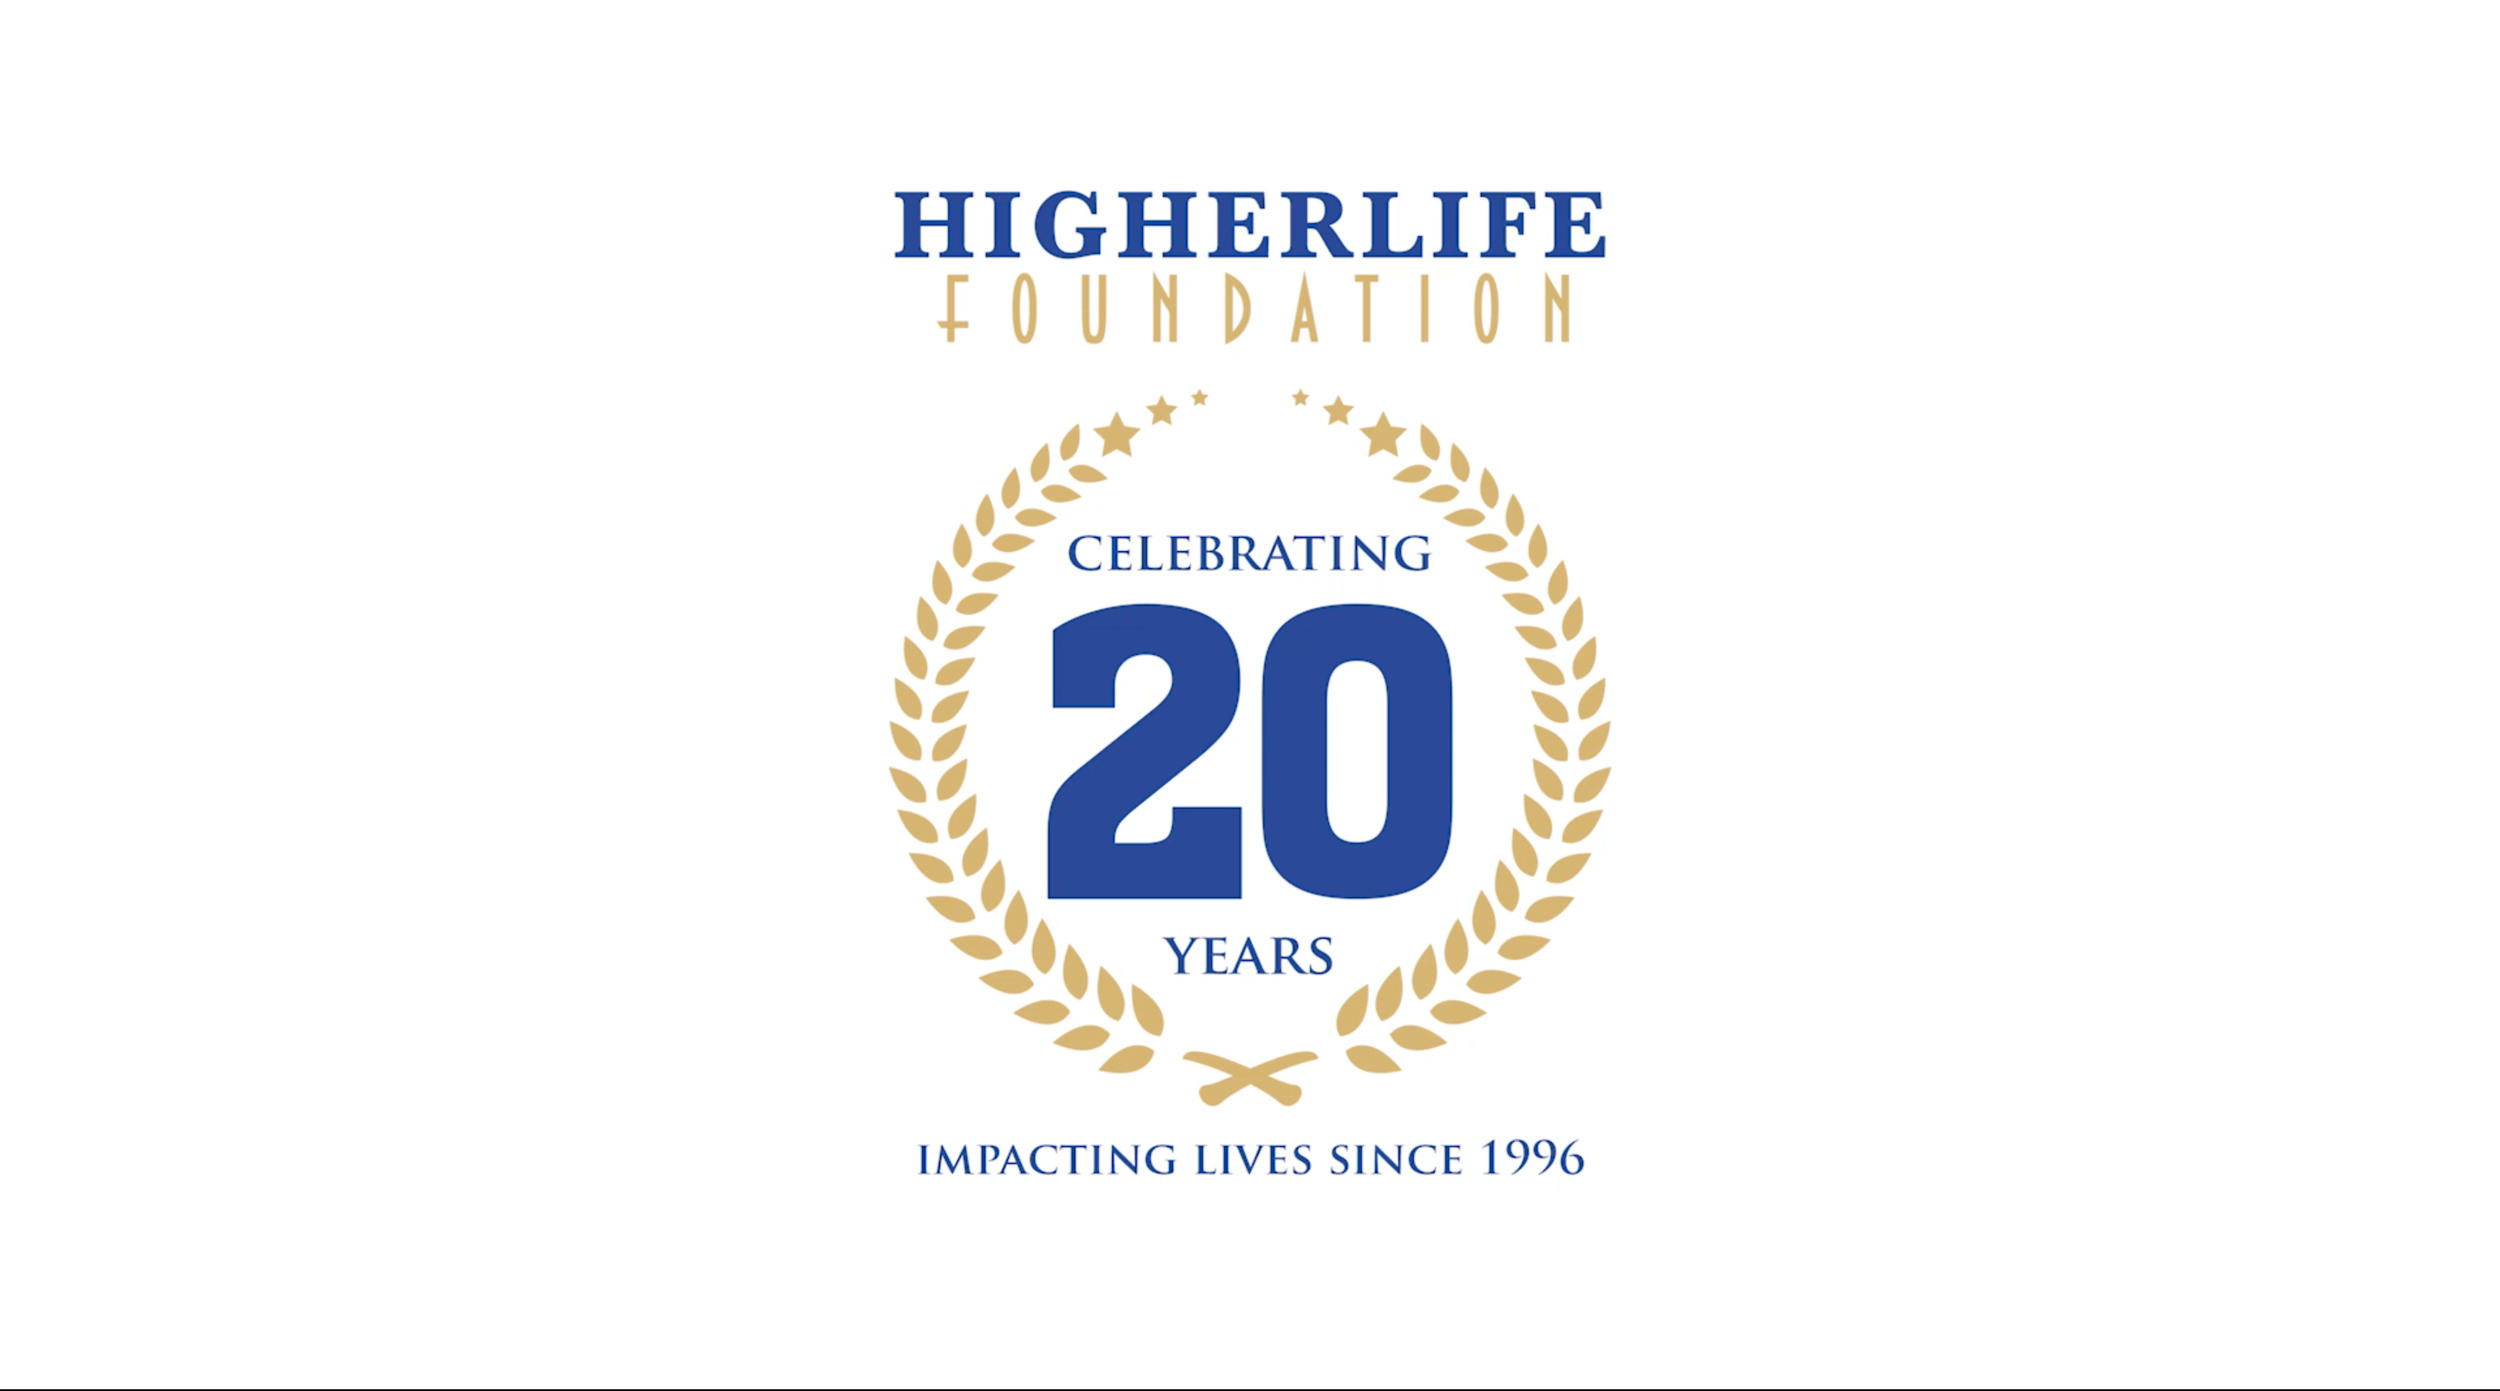 HIGHER LIFE FOUNDATION- 20 YEAR ANNIVERSARY CAMPAIGN